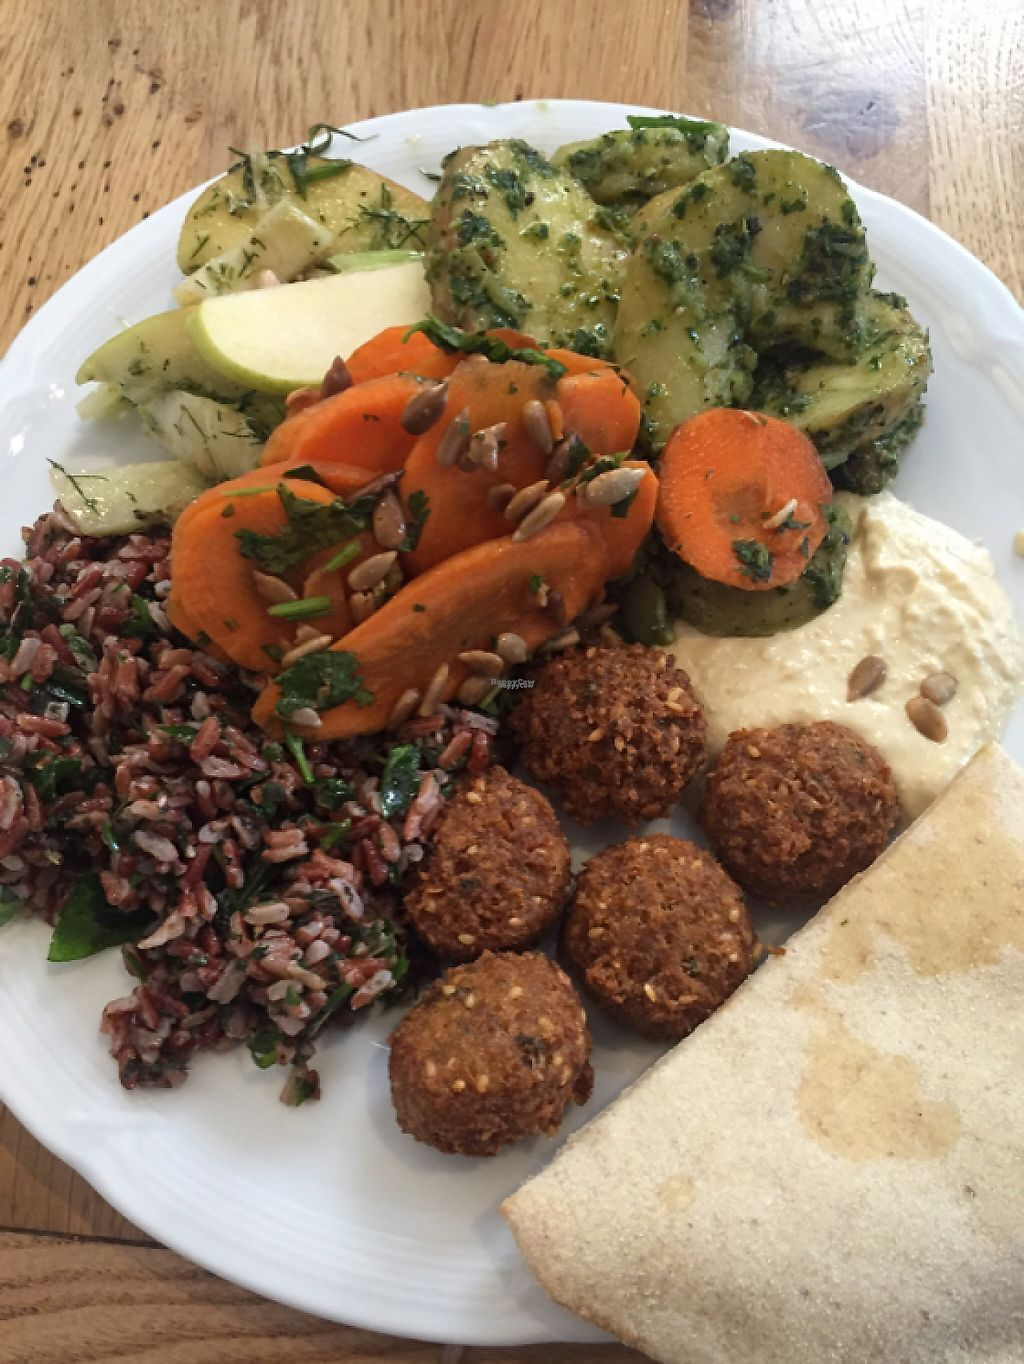 """Photo of RizRaz - Kompagnistraede  by <a href=""""/members/profile/americanvegan"""">americanvegan</a> <br/>lunch buffet <br/> October 2, 2016  - <a href='/contact/abuse/image/6697/229457'>Report</a>"""